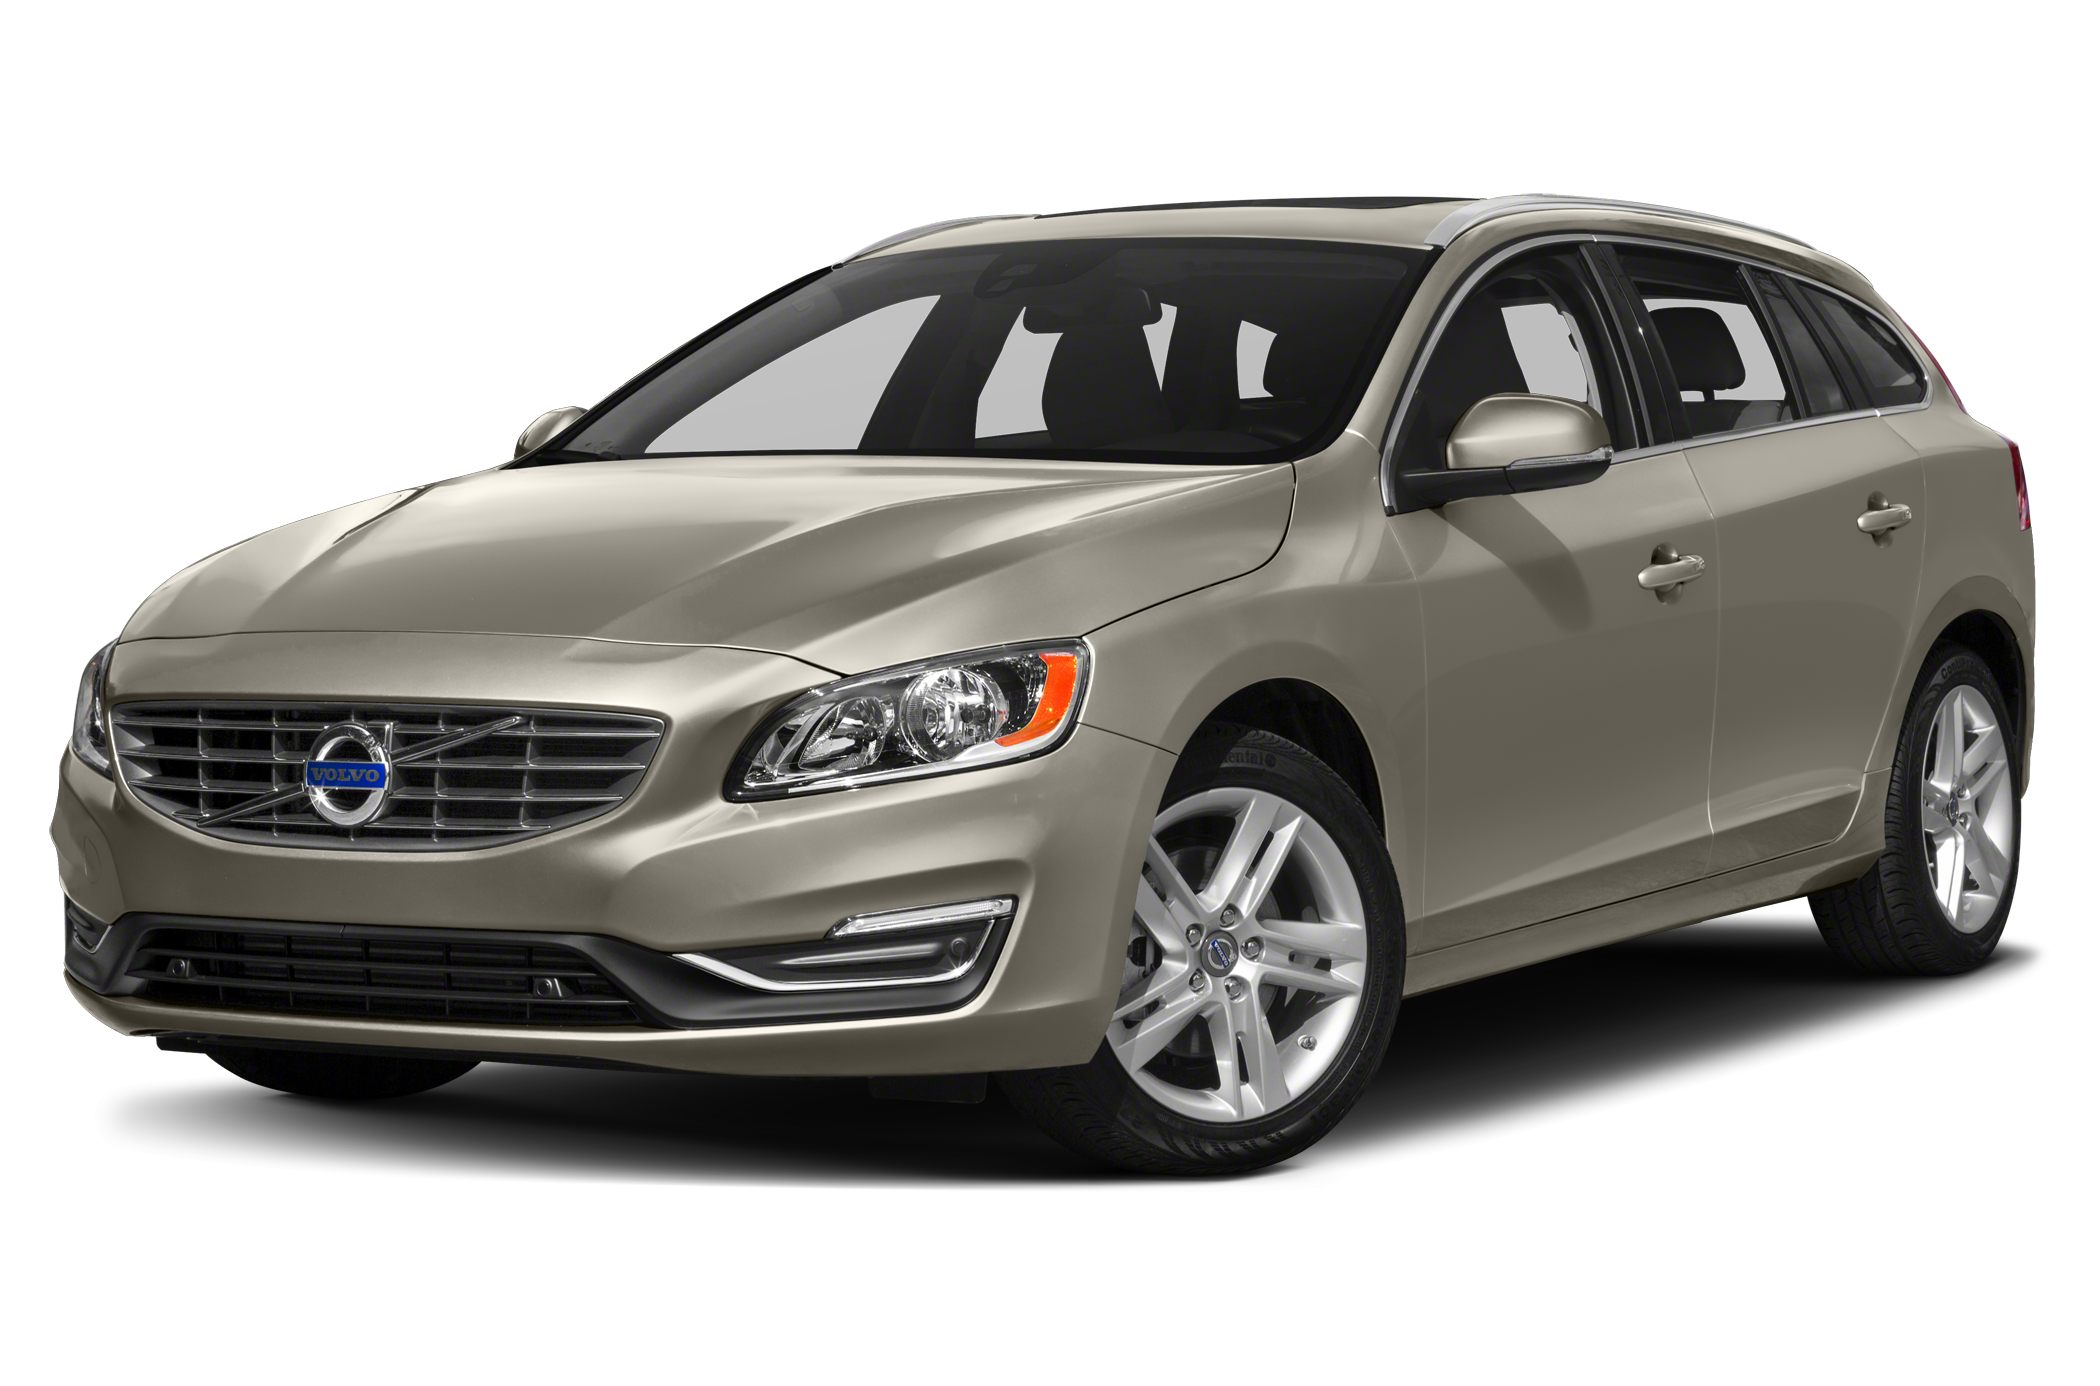 2015 Volvo V60 T5 Premier Wagon for sale in Columbia for $40,765 with 0 miles